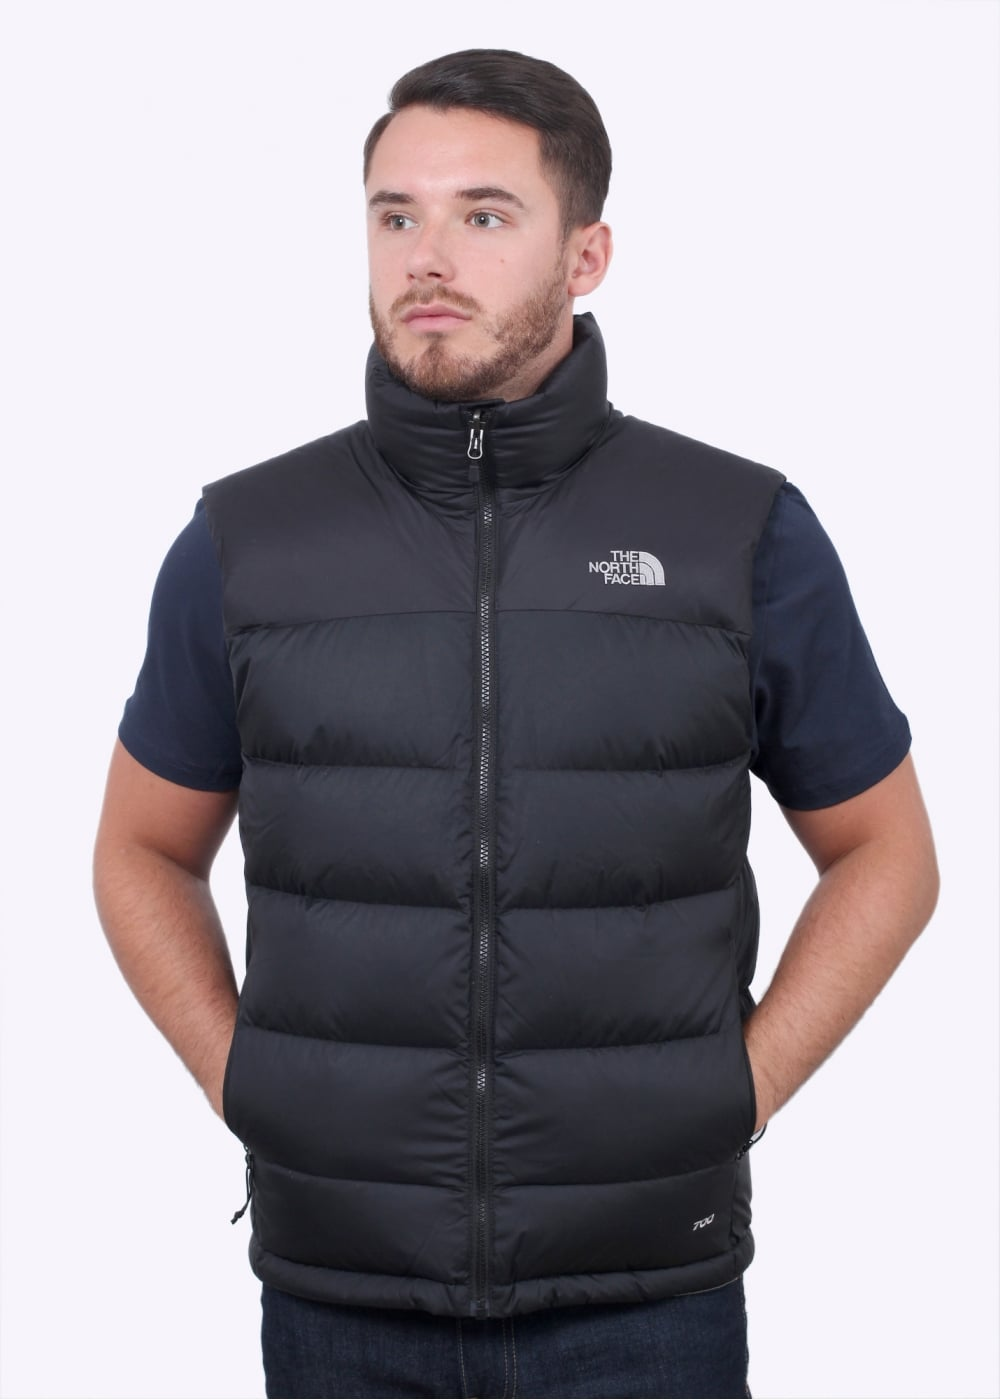 b03e34cfa429 The North Face Nuptse 2 Vest - Black - Gilets from Triads UK